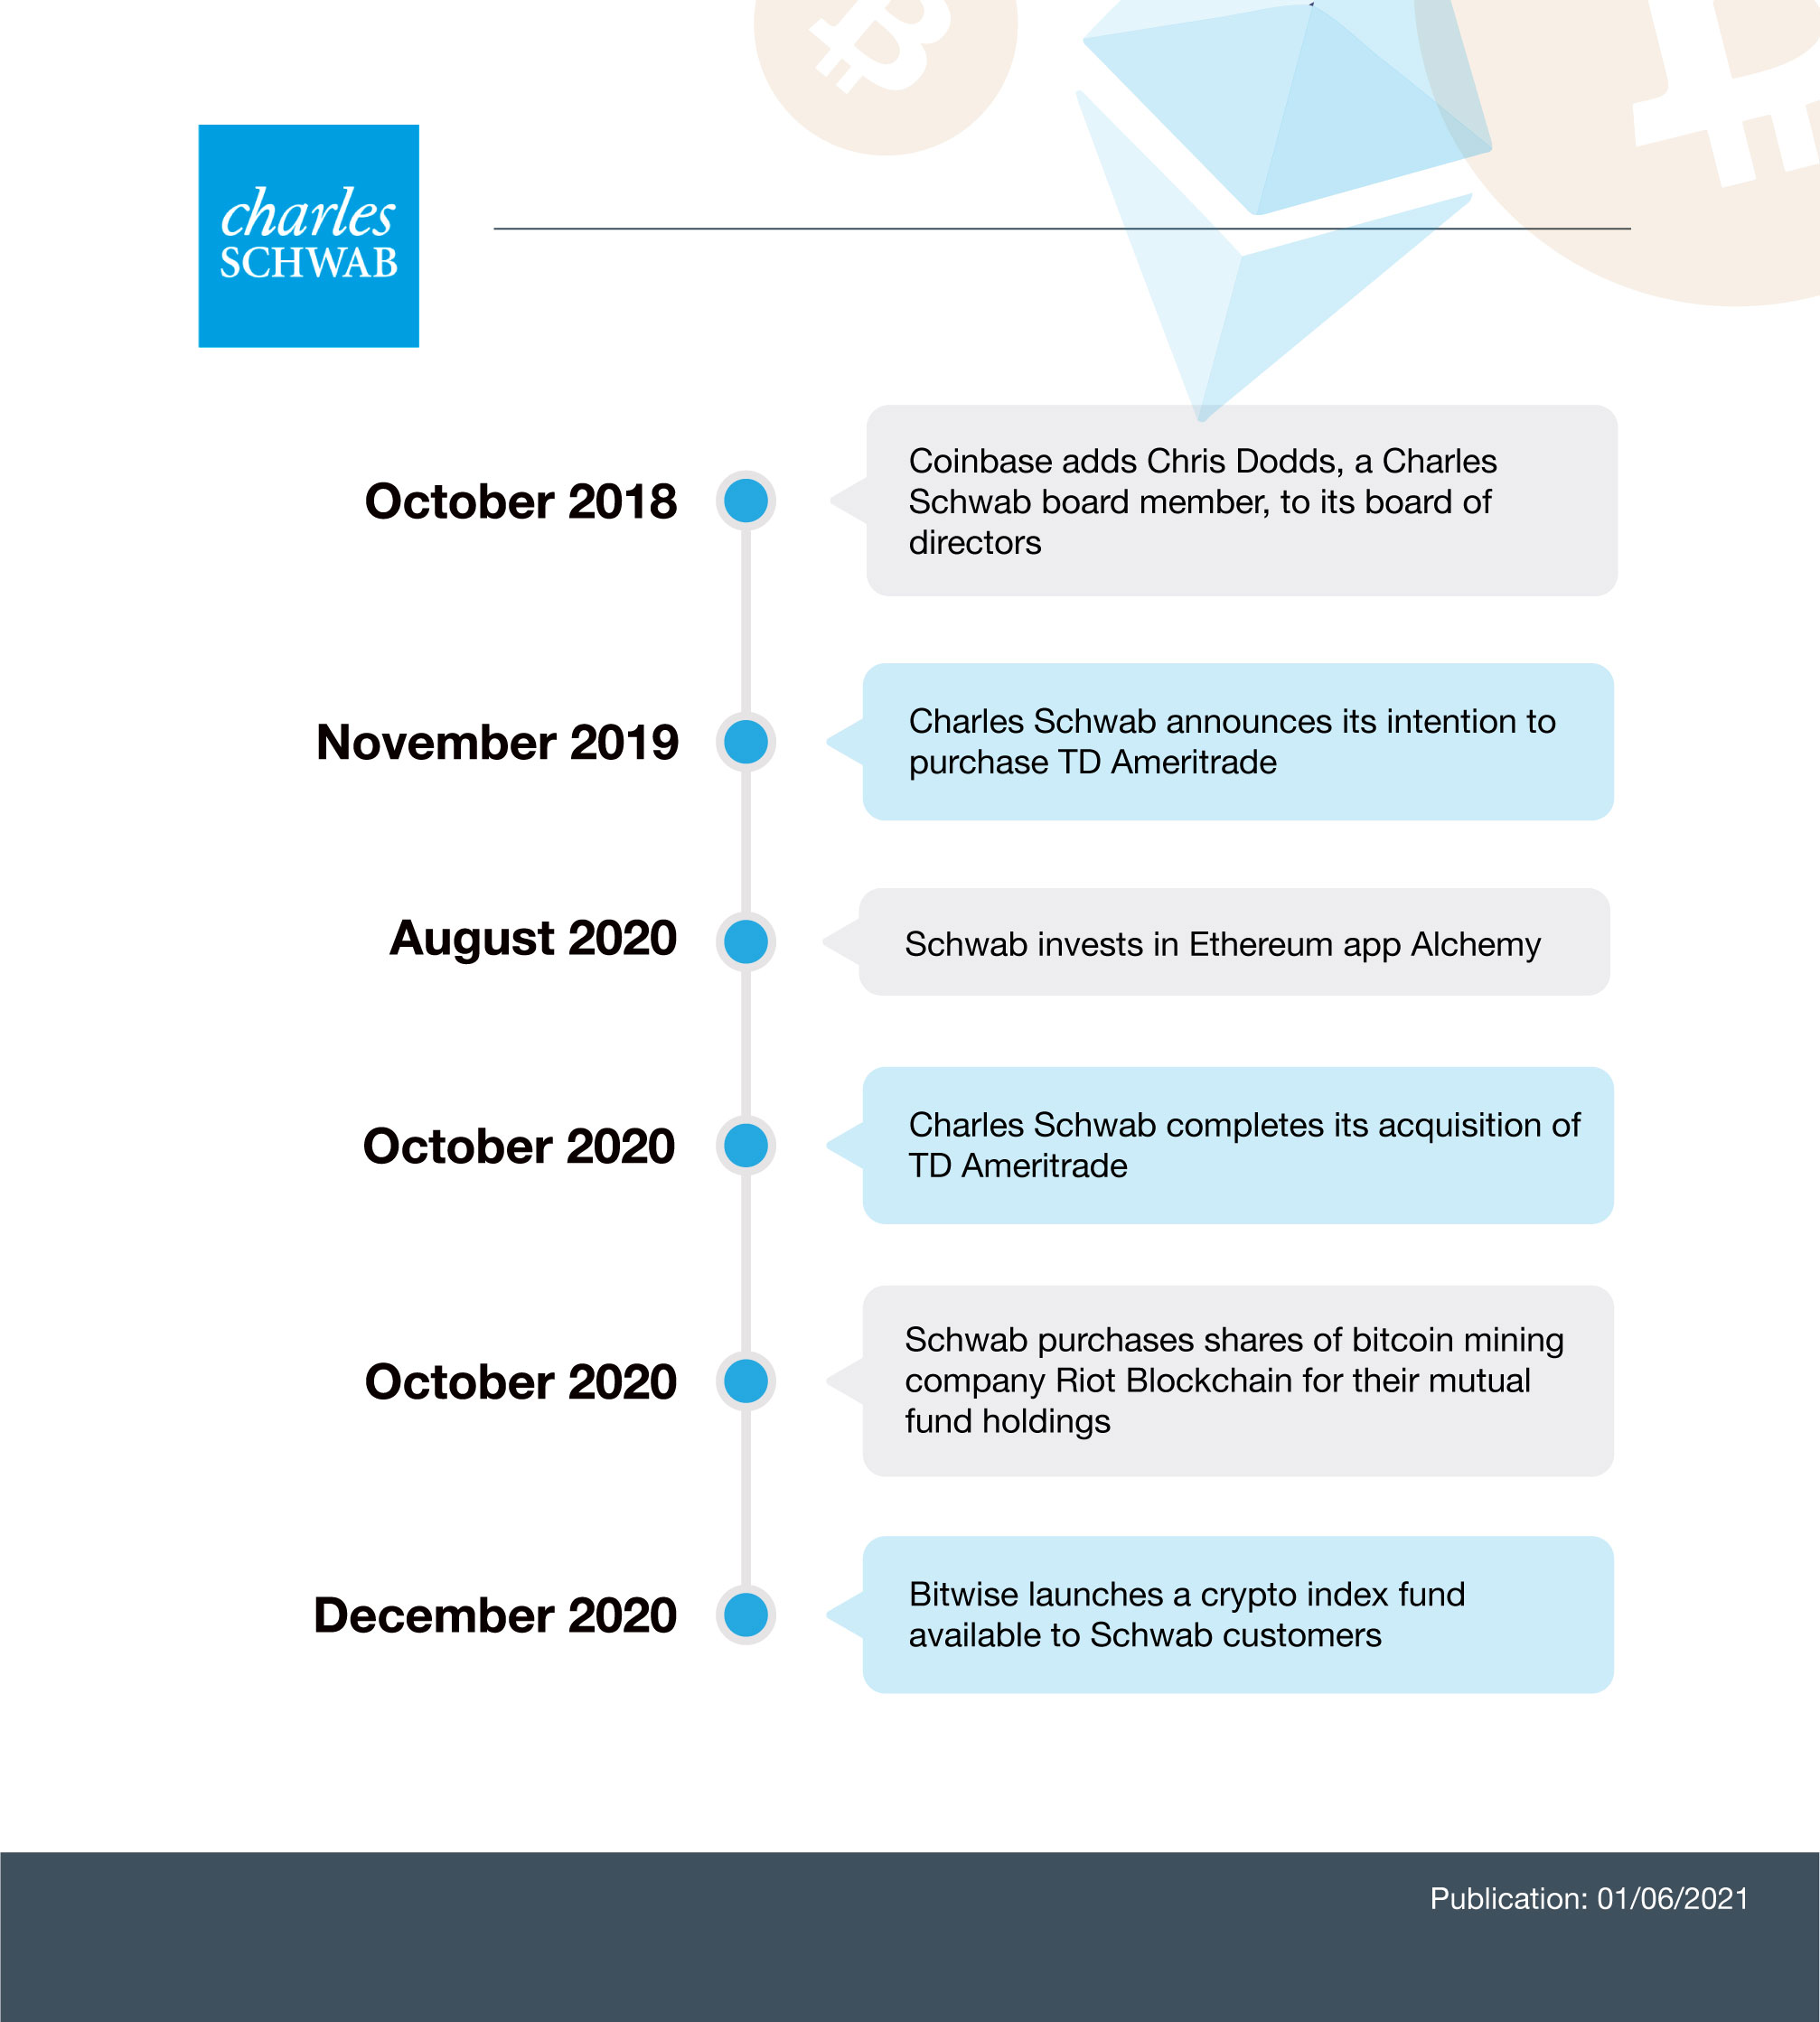 Charles Schwab and Bitcoin: Timeline